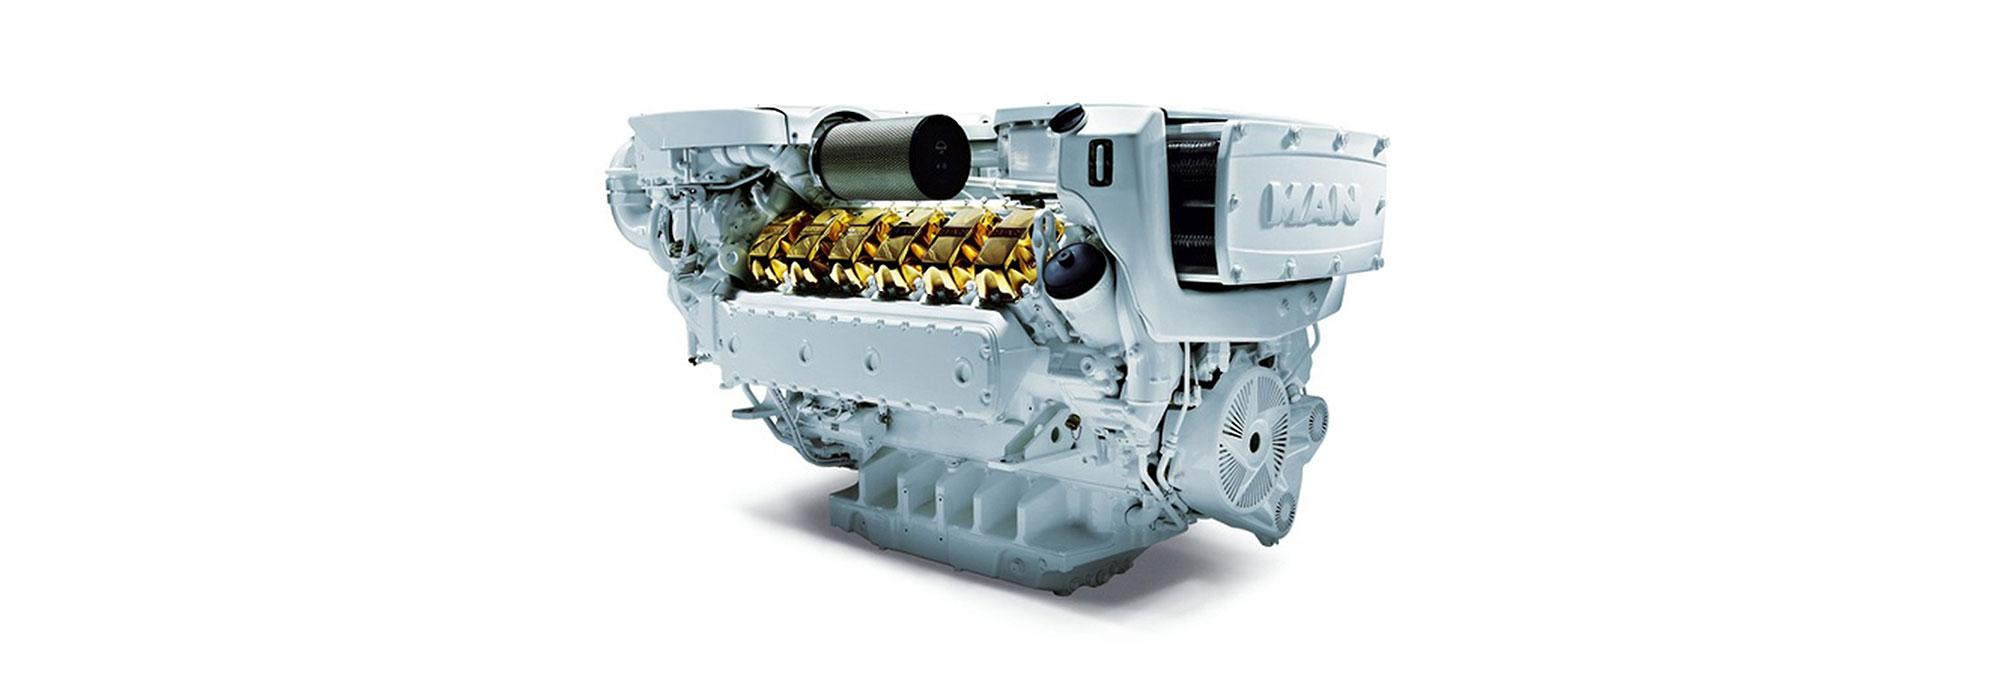 Yacht MAN Engines manufactured by Man Engines are suitable for application to expensive yachts and sport fishing boats